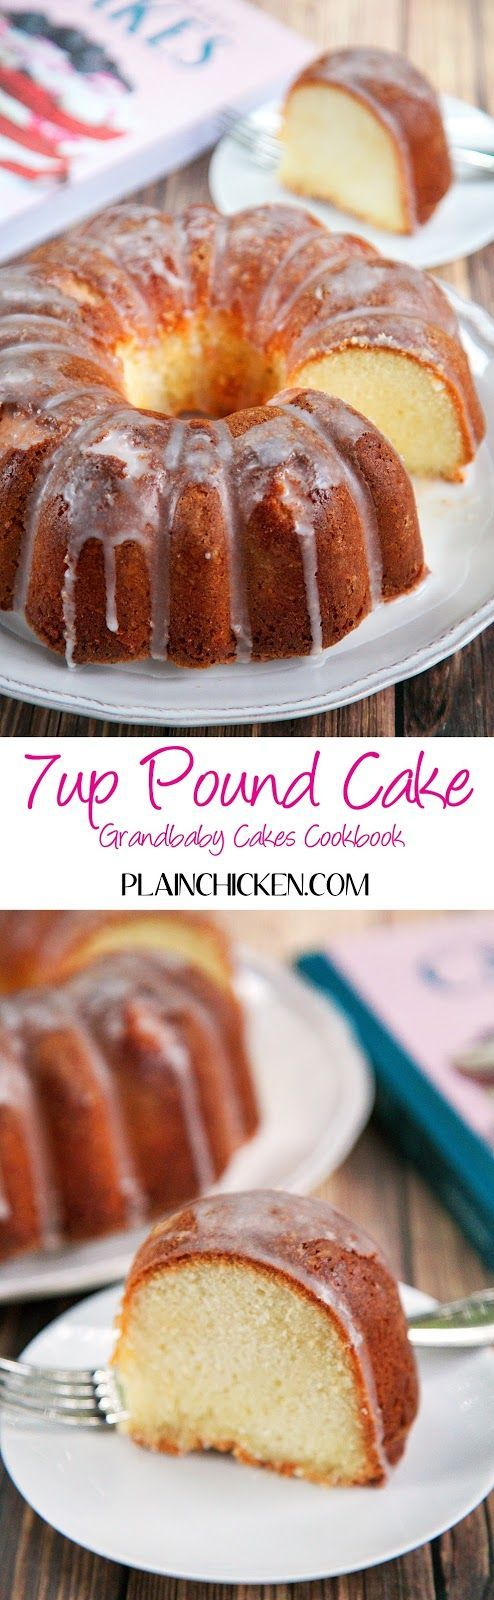 #MY7UPUPGRADE #Contest Mama's 7UP Pound Cake recipe - vintage recipe passed down for generations. Cooks low and slow for an amazing cake! One of the easiest and best pounds cakes I've ever made!